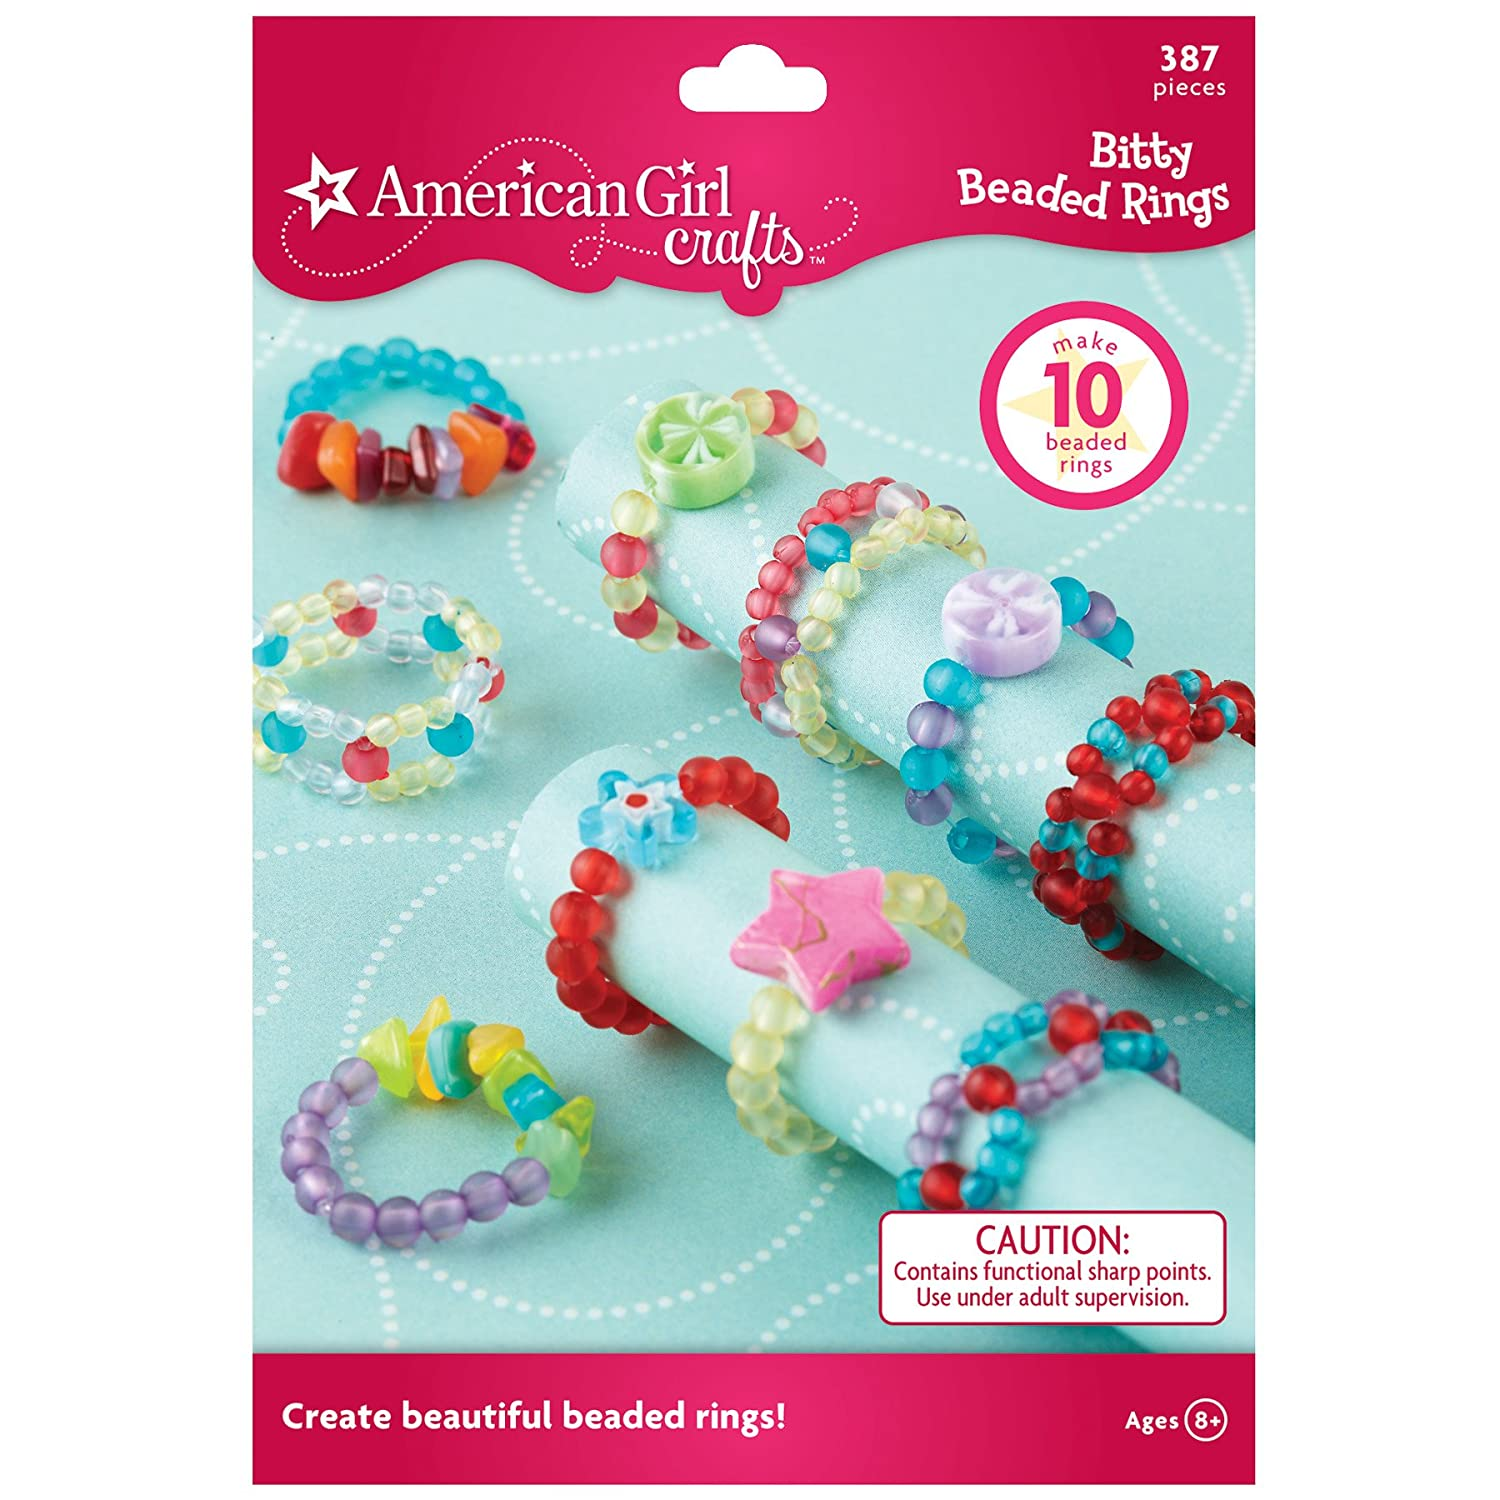 American Girl Crafts Bitty Beaded Rings Kit